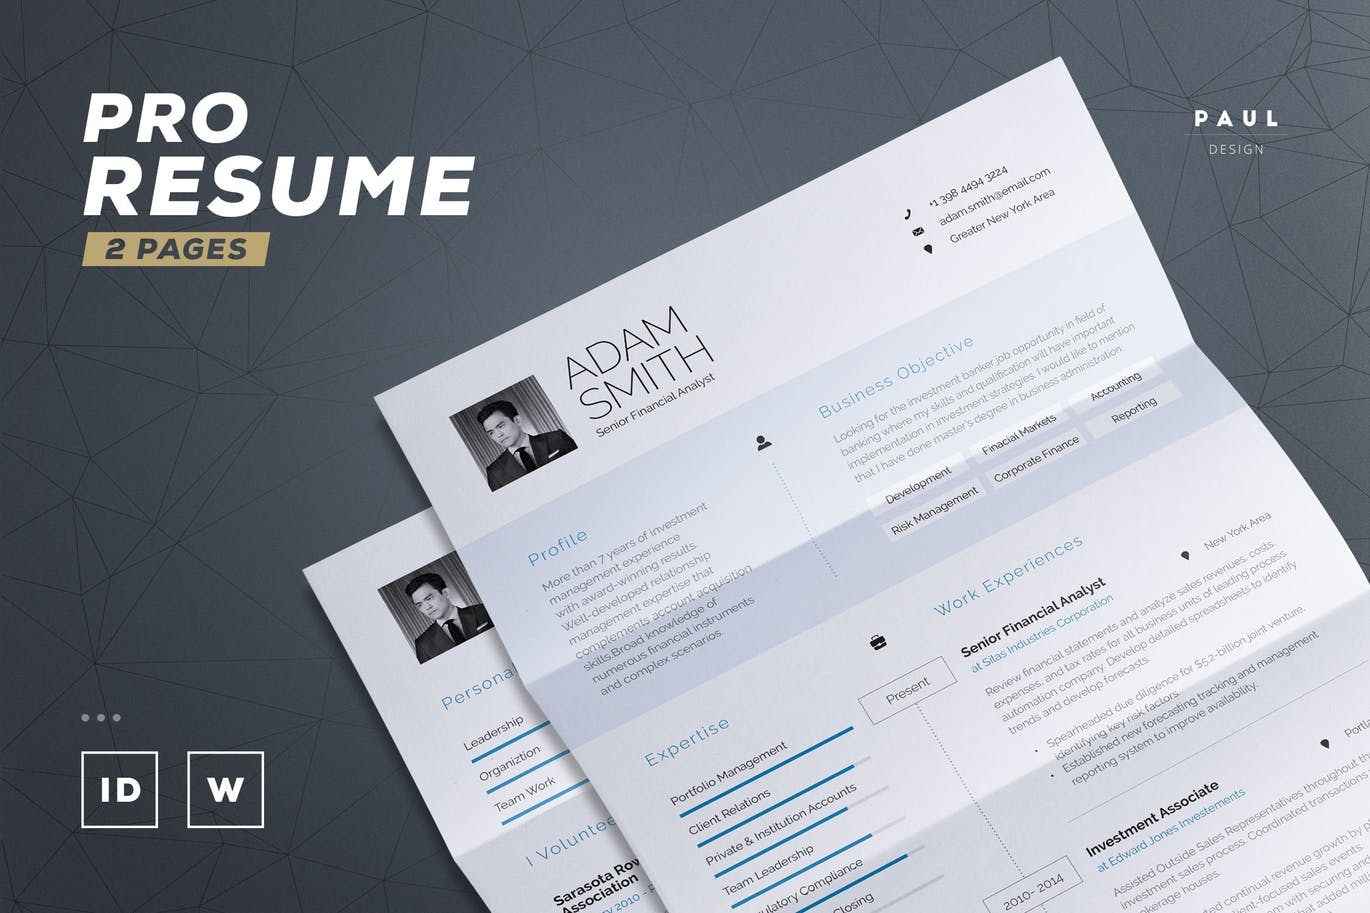 Pro-Resume-Cv 50+ Best CV & Resume Templates 2020 design tips